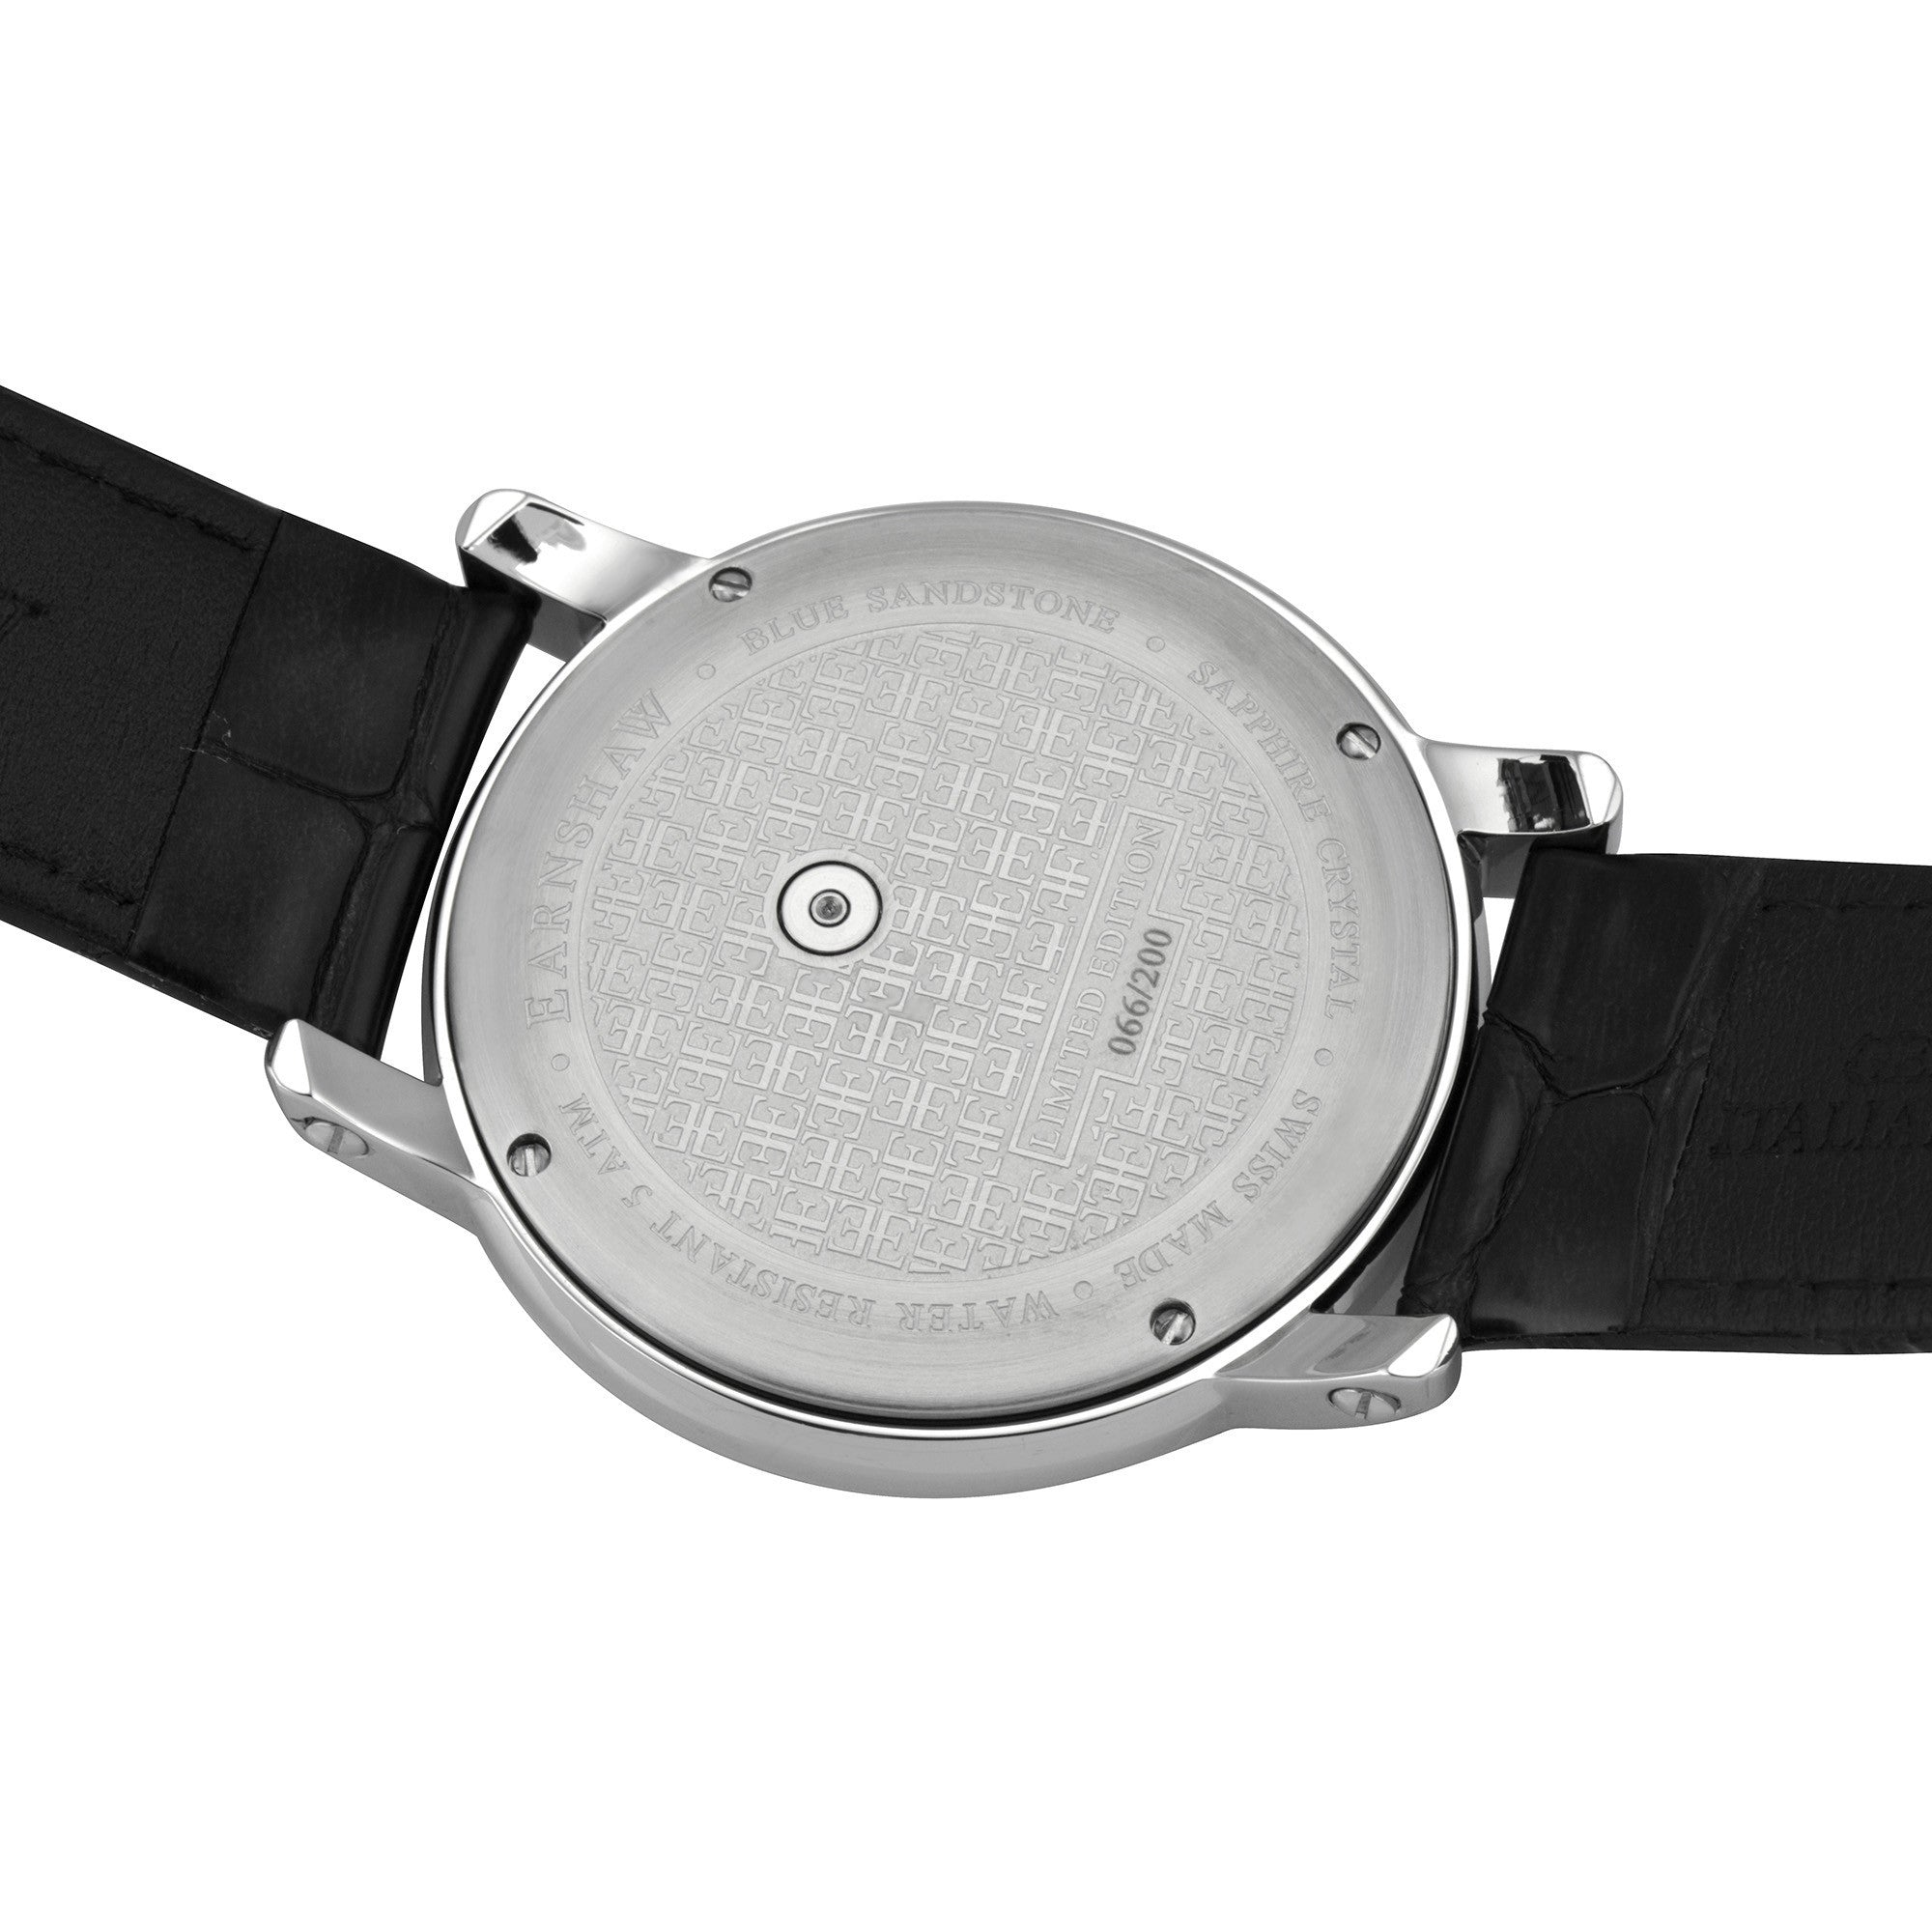 Thomas Earnshaw THOMAS EARNSHAW SWISS MADE Lapidary Quartz Watch With Black Genuine Leather Strap ES-0027-01